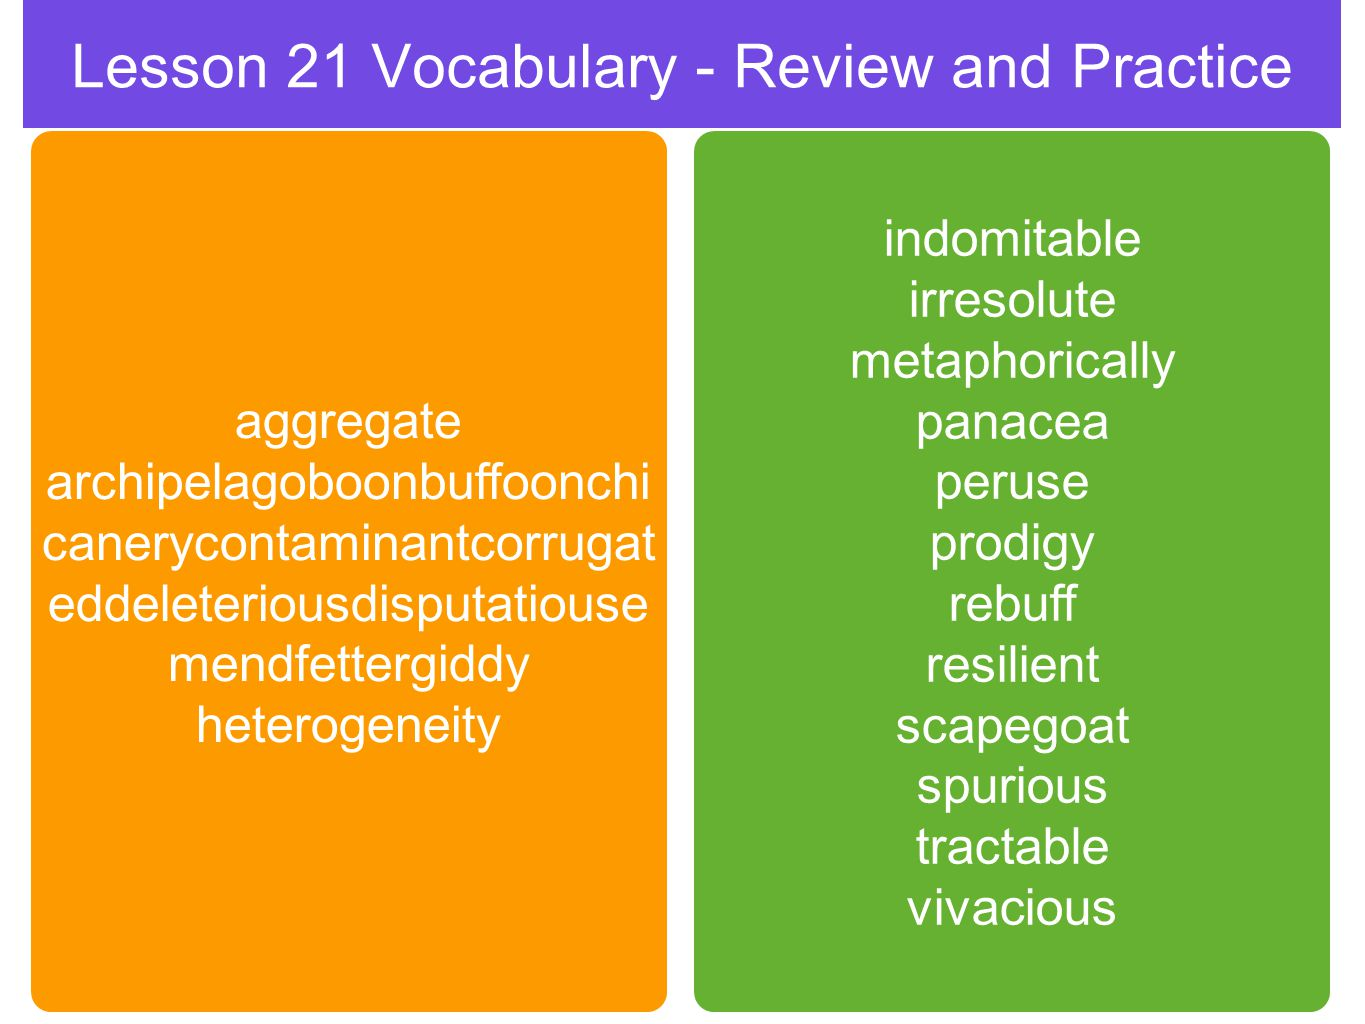 Lesson 21 Vocabulary - Review and Practice aggregate archipelagoboonbuffoonchi canerycontaminantcorrugat eddeleteriousdisputatiouse mendfettergiddy heterogeneity indomitable irresolute metaphorically panacea peruse prodigy rebuff resilient scapegoat spurious tractable vivacious